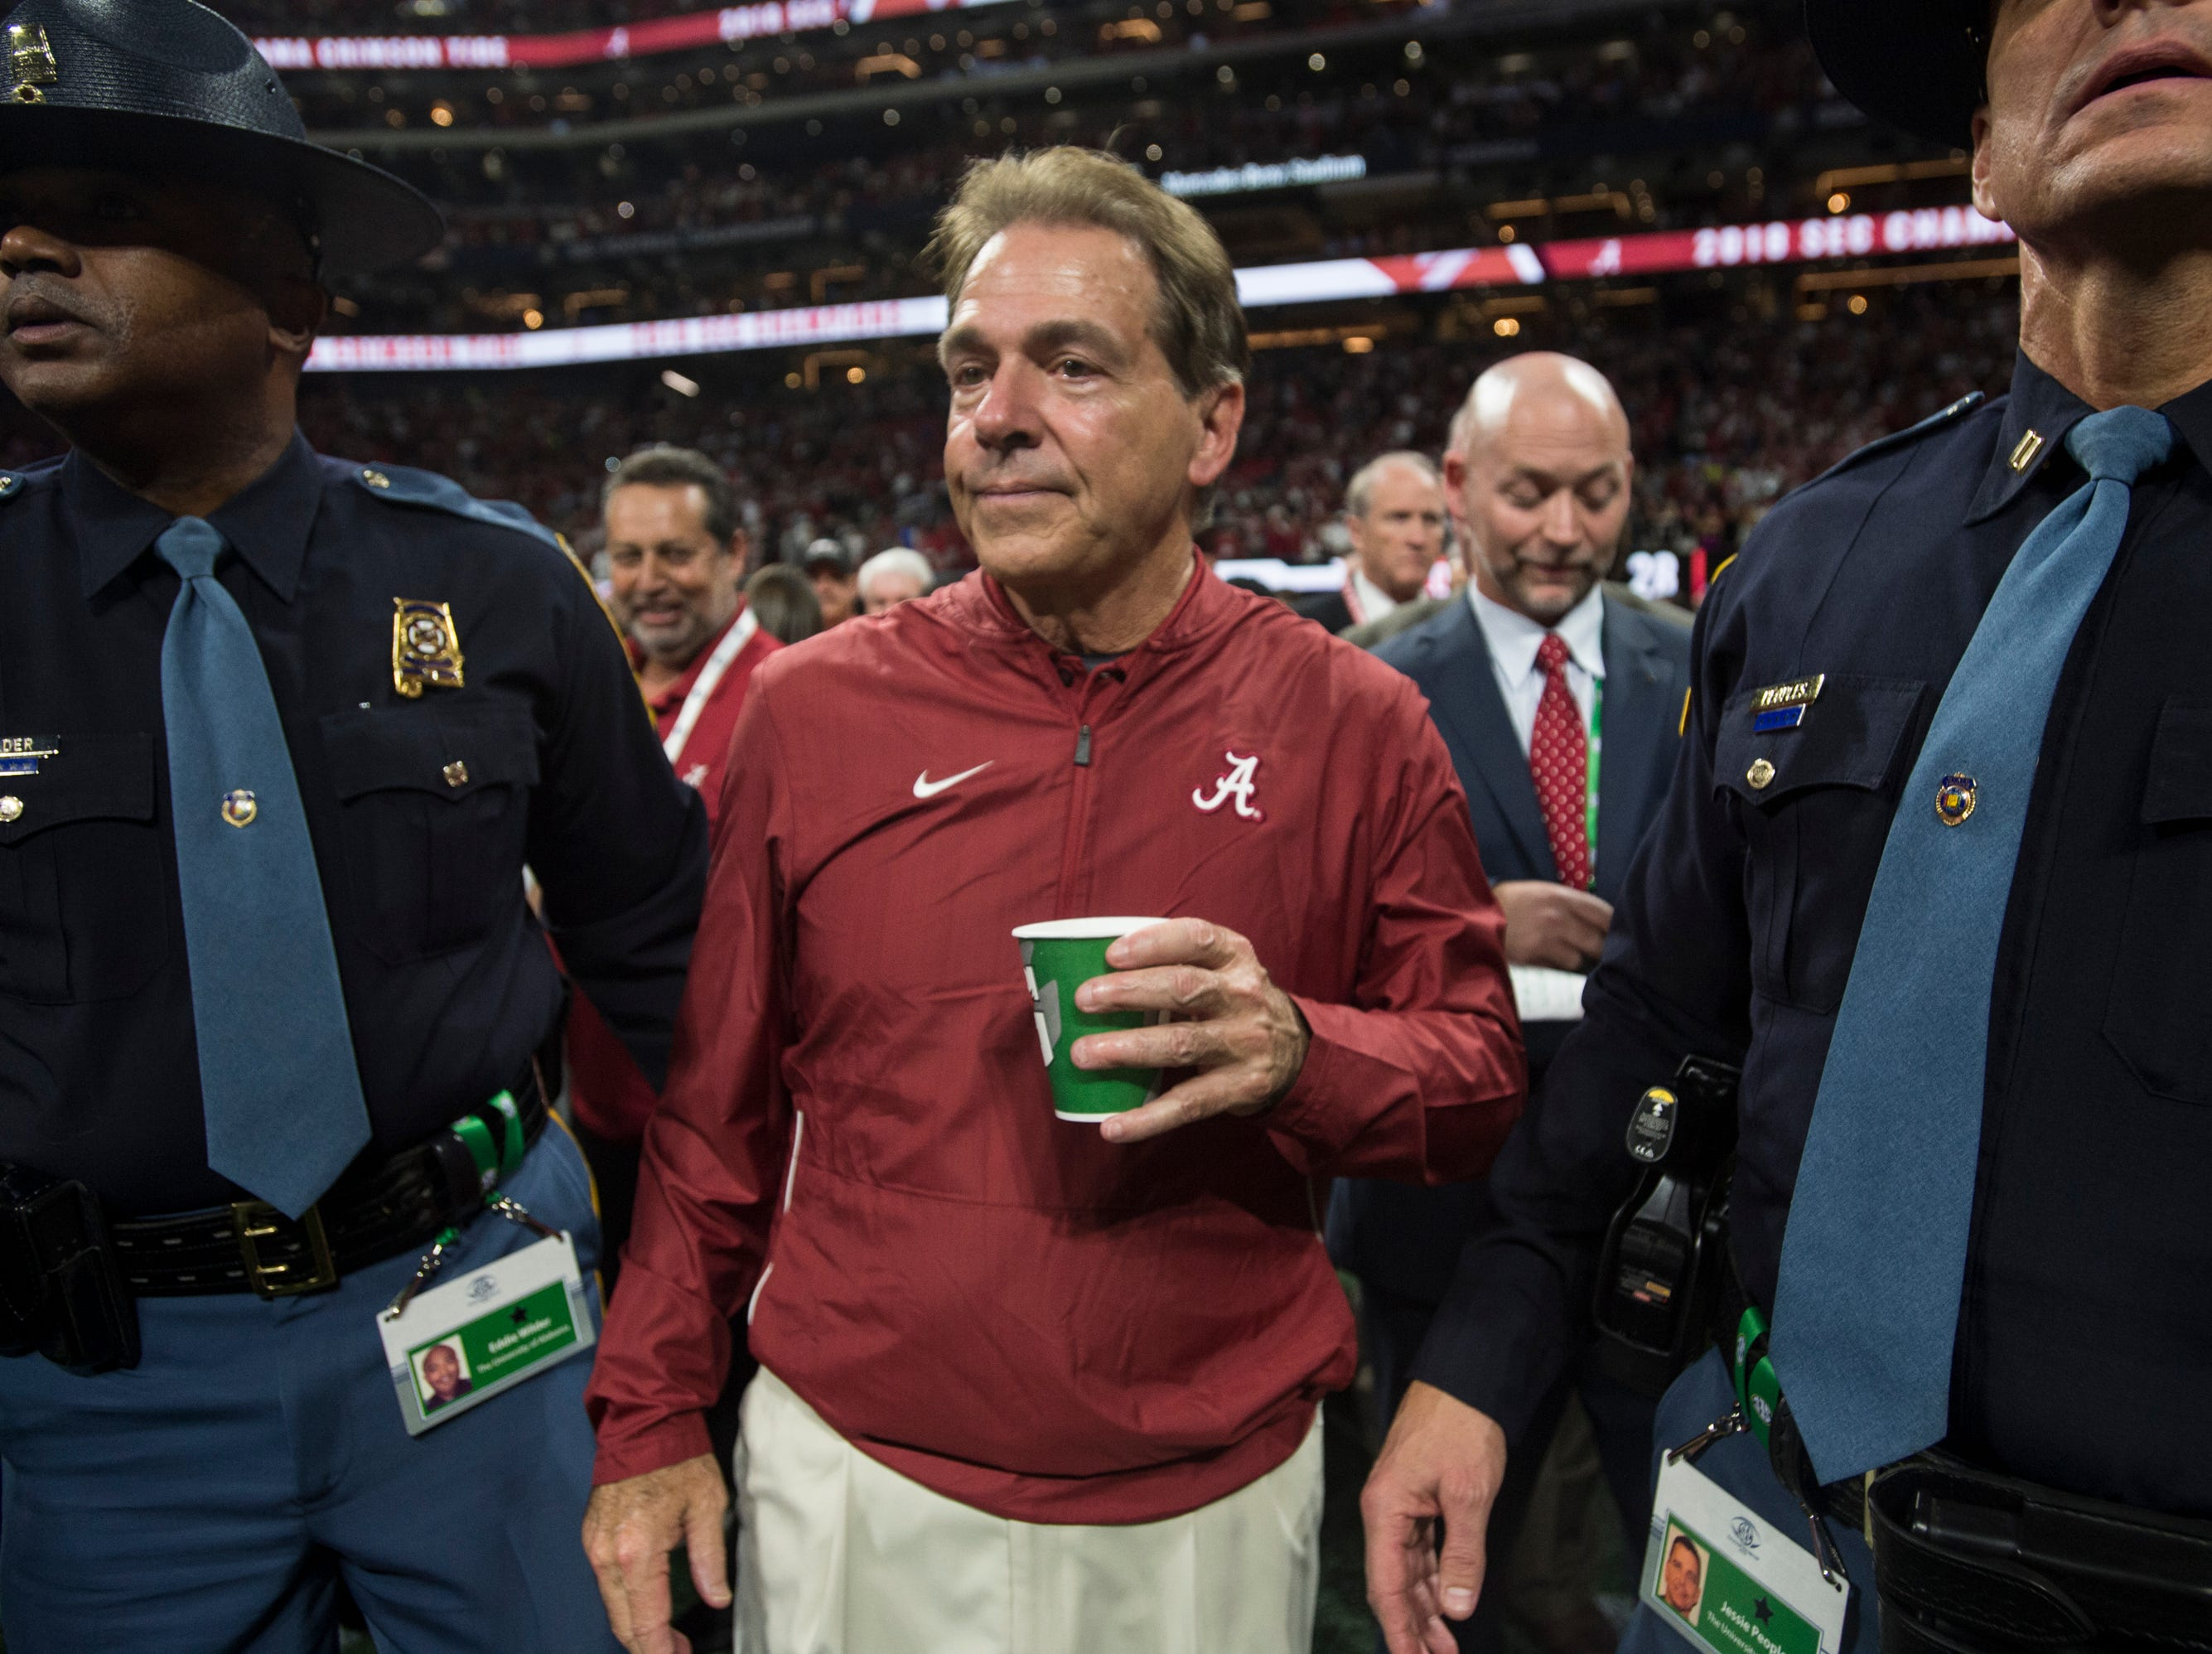 Alabama head coach Nick Saban walks the field after winning the SEC Championship game at Mercedes-Benz Stadium in Atlanta, Ga., on Saturday Dec. 1, 2018. Alabama defeated Georgia 35-28.